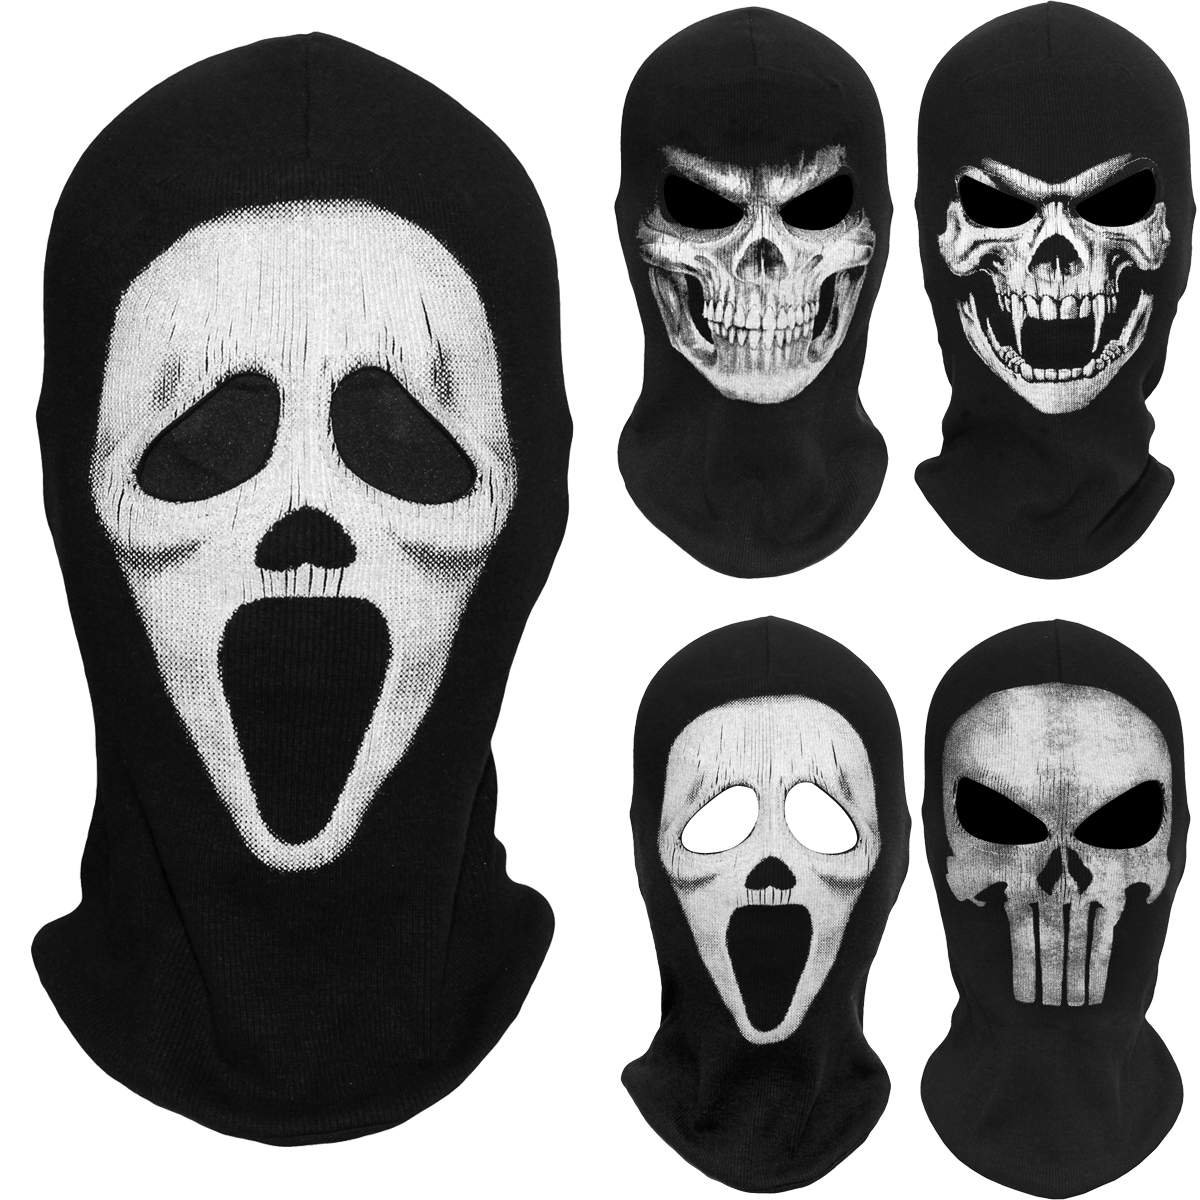 Compare Prices on Face Masks Skull- Online Shopping/Buy Low Price ...